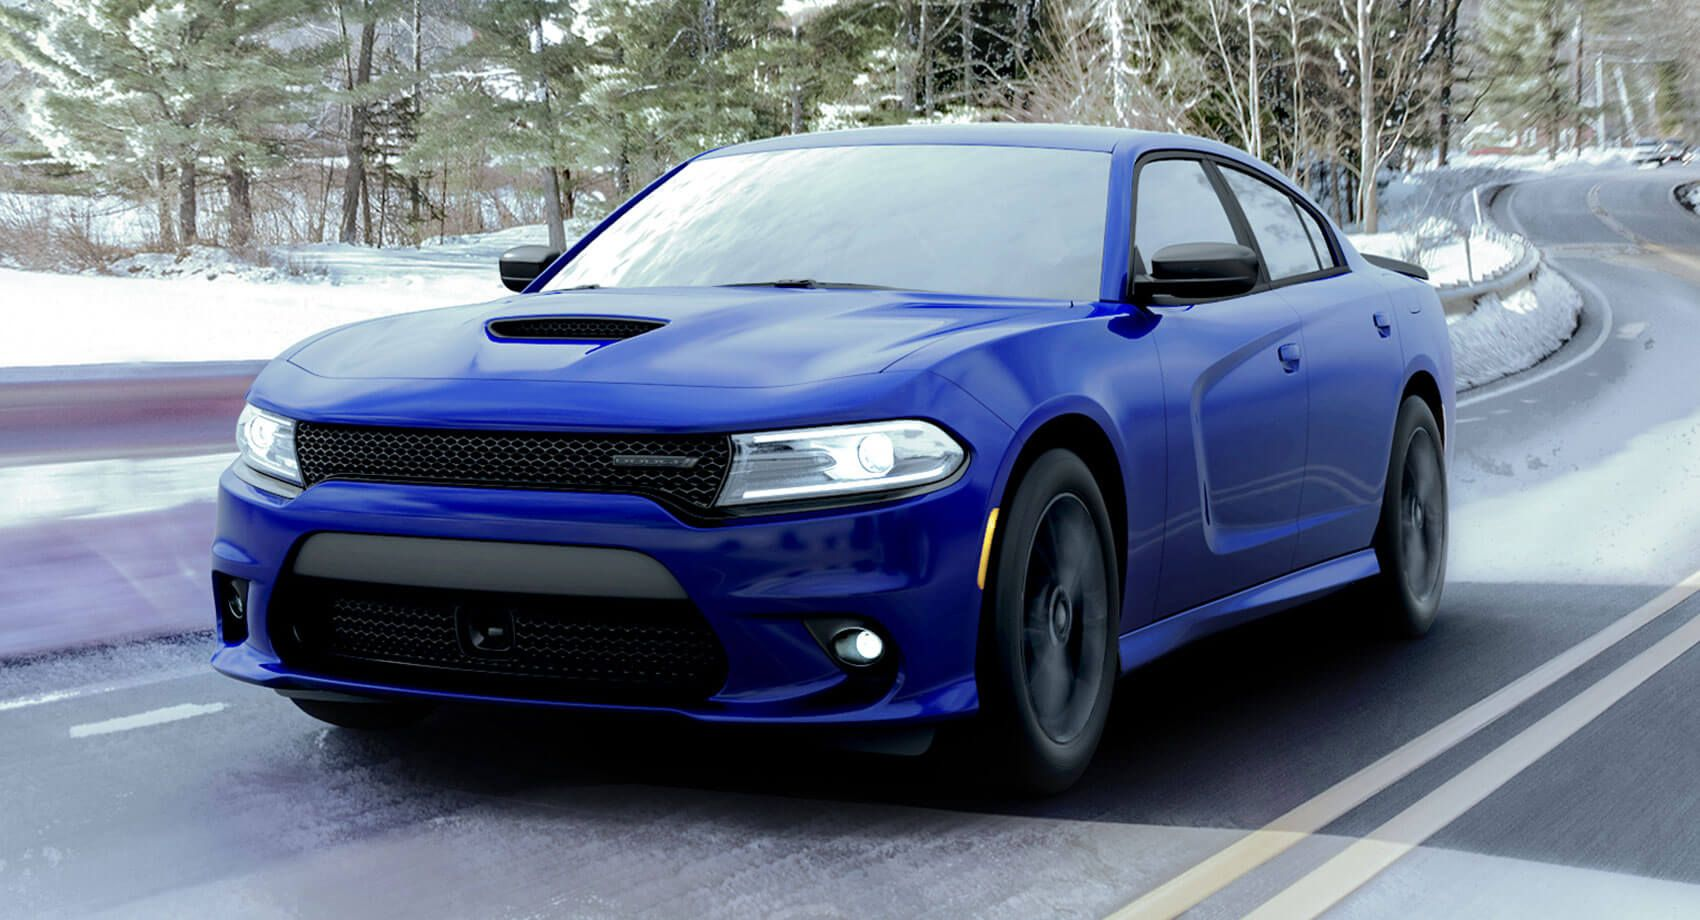 2020 Dodge Charger Gt Gets All Wheel Drive Is Priced From 34 995 Dodge Charger Chevrolet Camaro 1969 1969 Chevy Camaro